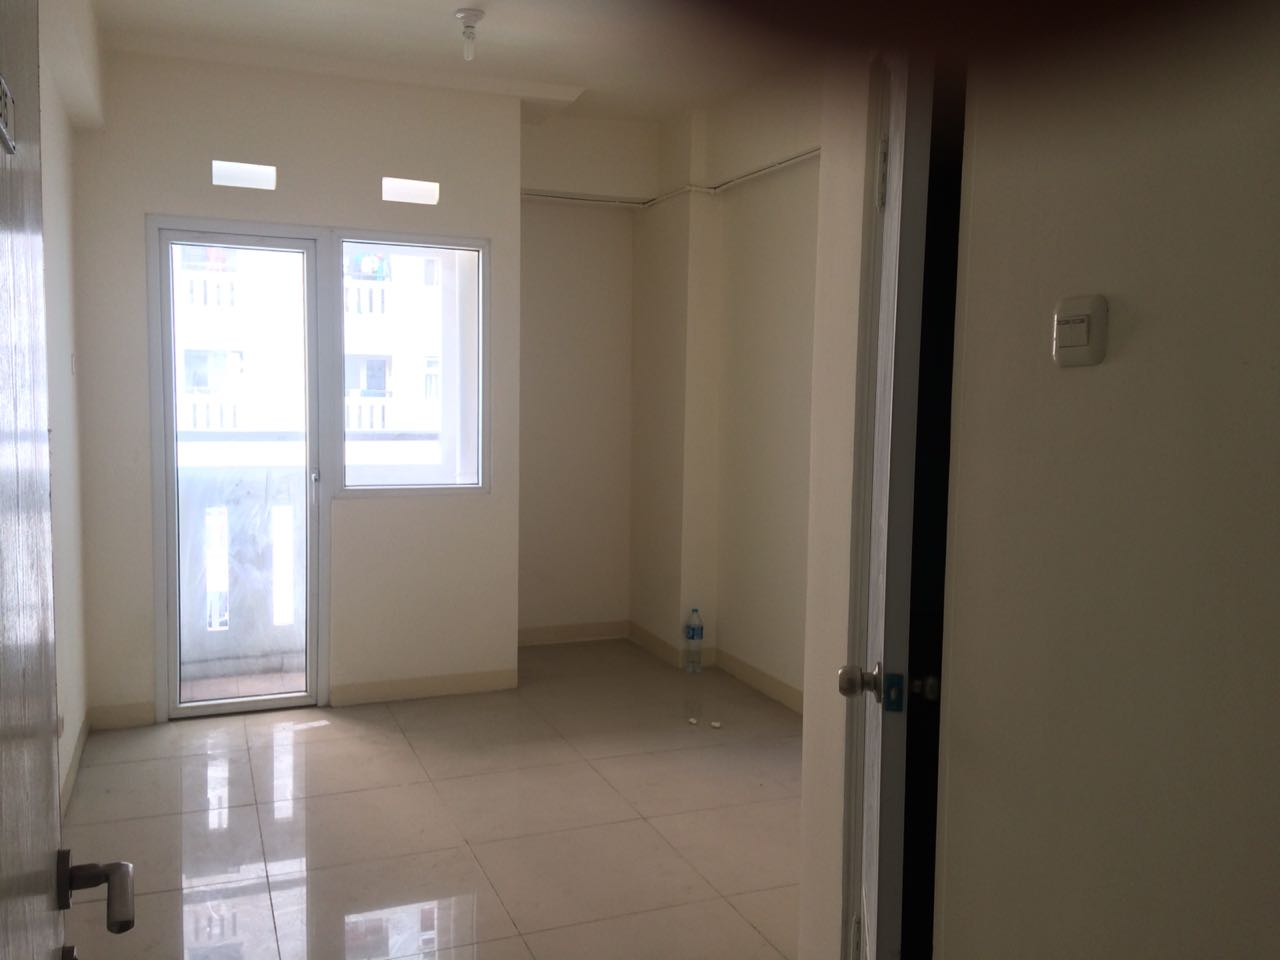 Dijual 1 unit (2Bedroom) Apartment Aspen - Fatmawati